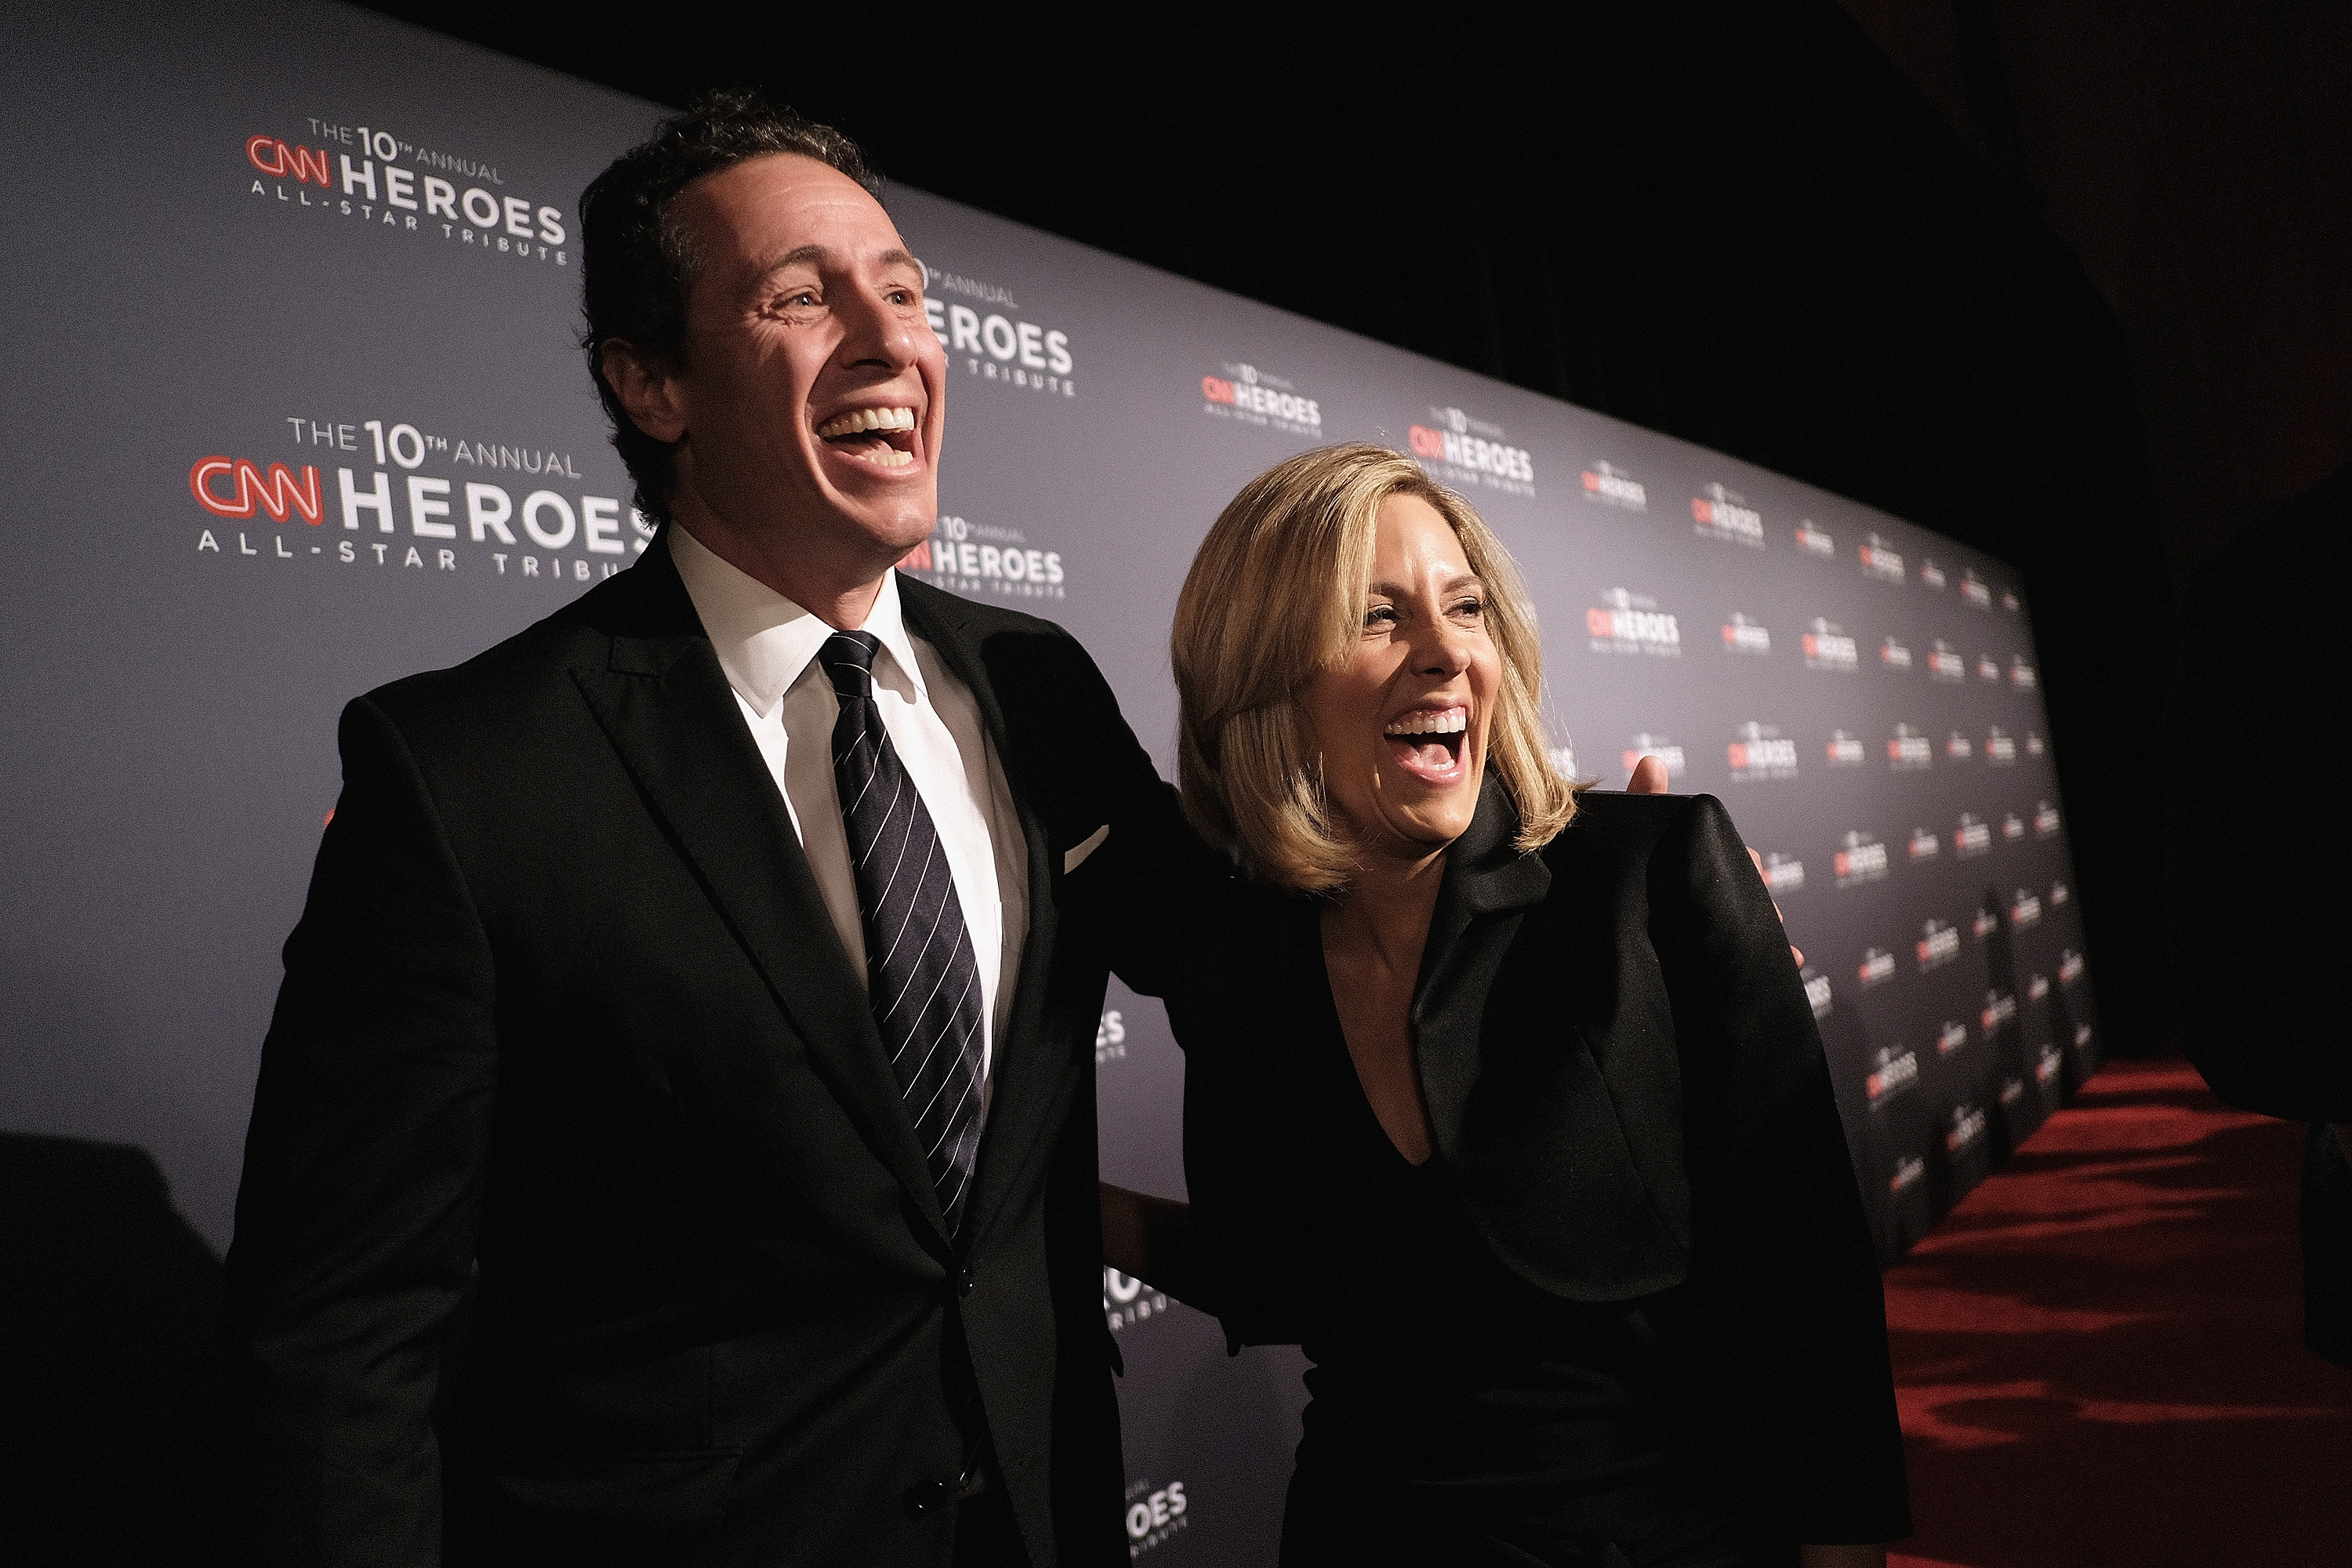 NEW YORK, NY - DECEMBER 11: Chris Cuomo (L) and Alisyn Camerota attend CNN Heroes Gala 2016 at the American Museum of Natural History on December 11, 2016 in New York City. 26362_012 (Photo by Jason Kempin/Getty Images for Turner)